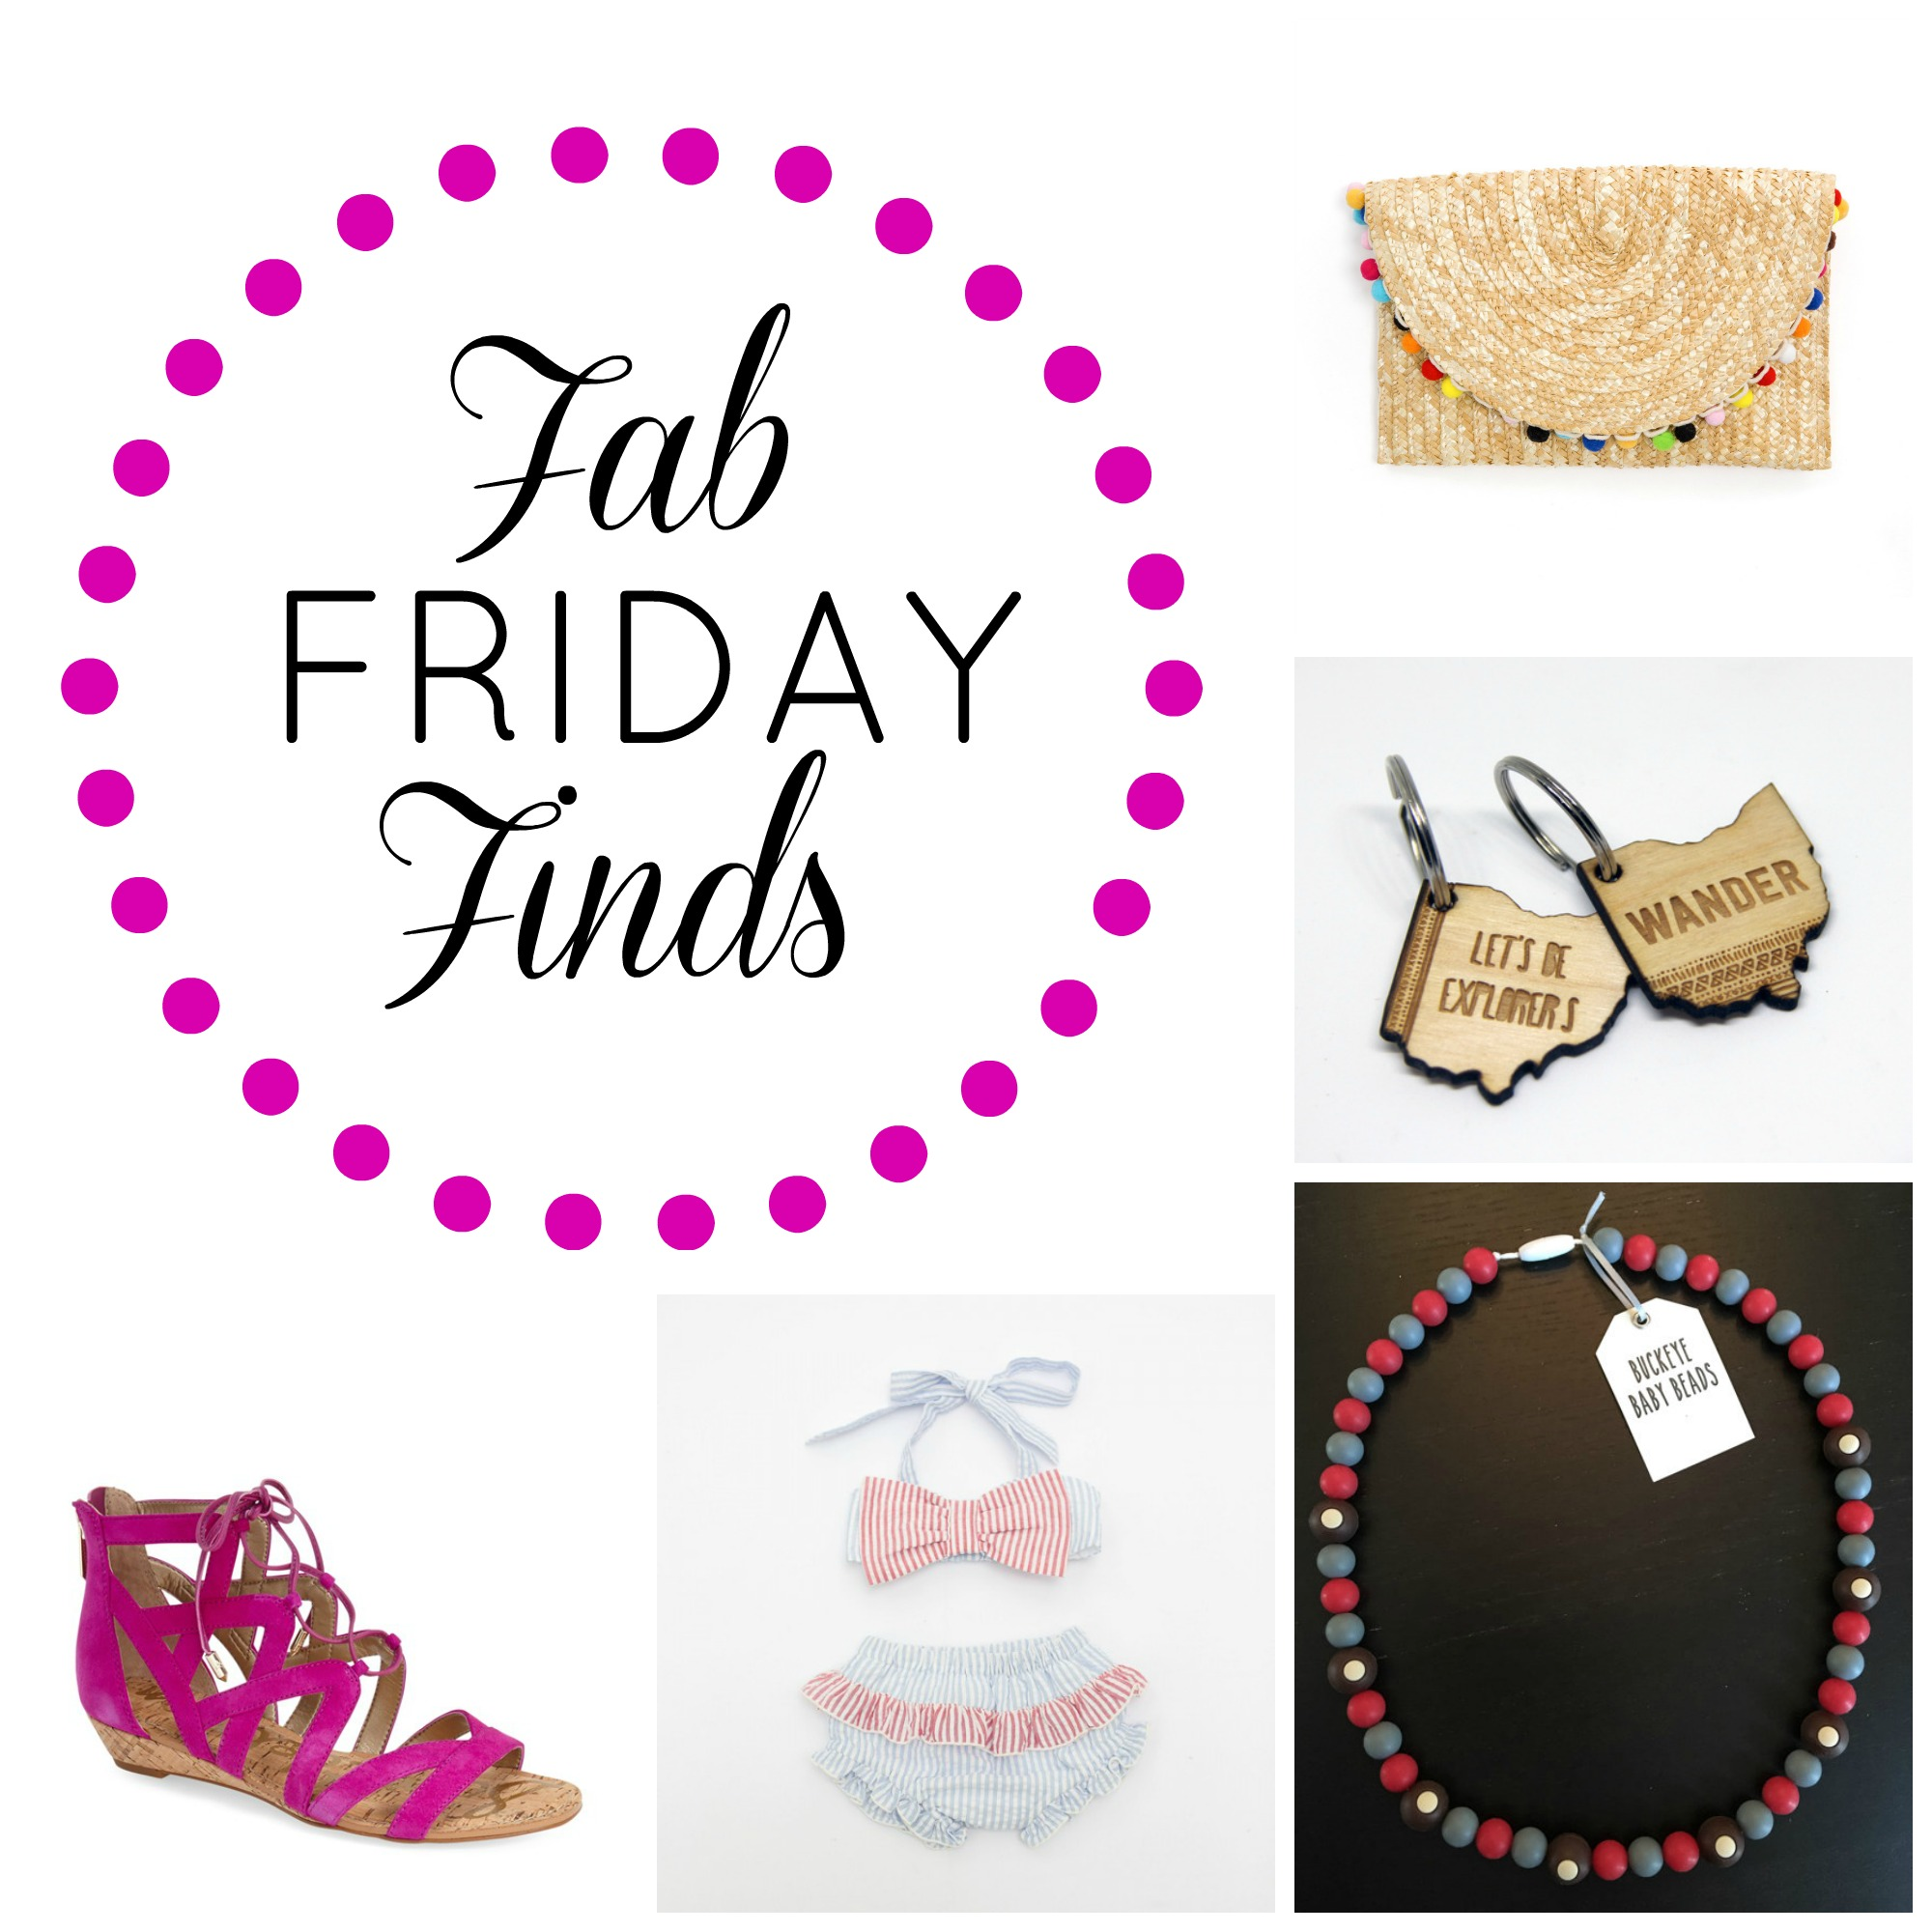 Fab Friday Finds // girl about columbus